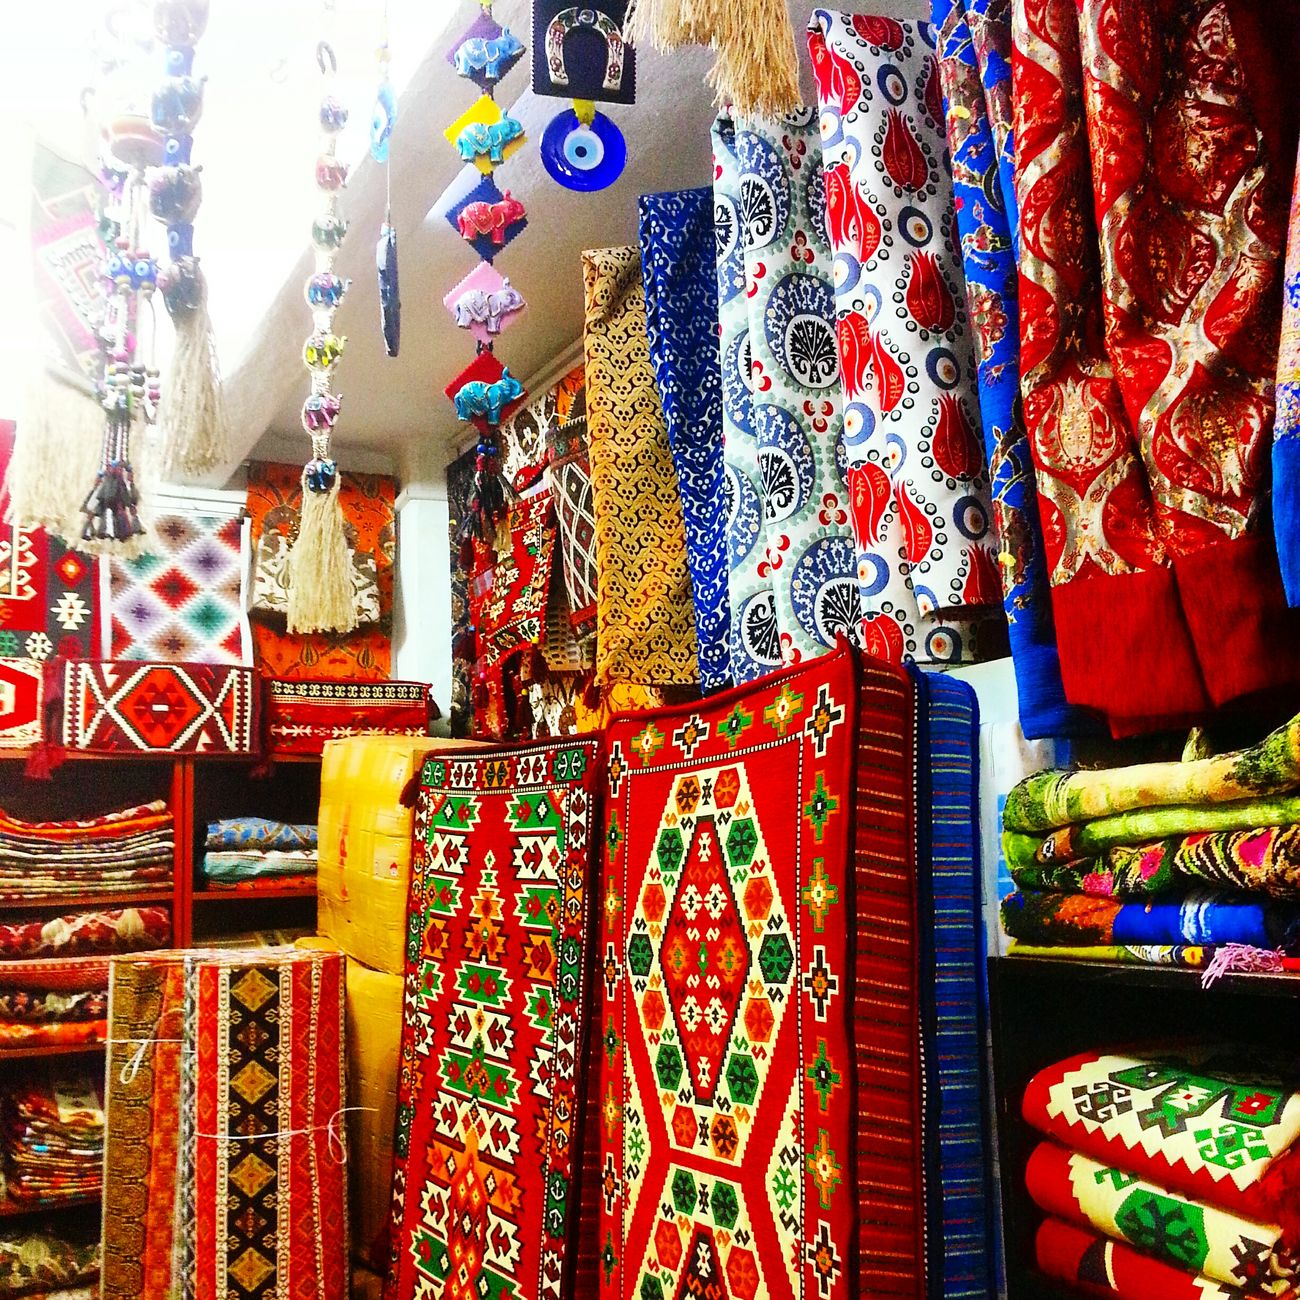 Grandbazaar In Happiness Istanbulstreetphotography Istanbuldayasam Enjoying Life Turkinstagram Turkeyphotooftheday Relaxing Istanbulove Hello World Turkishfollowers EyeEm Gallery That's Me EyeEmBestPics Taking Photos Istanbul - Bosphorus Carpet Design Love Carpet - Decor Ottoman Life OttomanCity Ottomanarchitecture Ottomanturkish Ottoman City Eye4photography